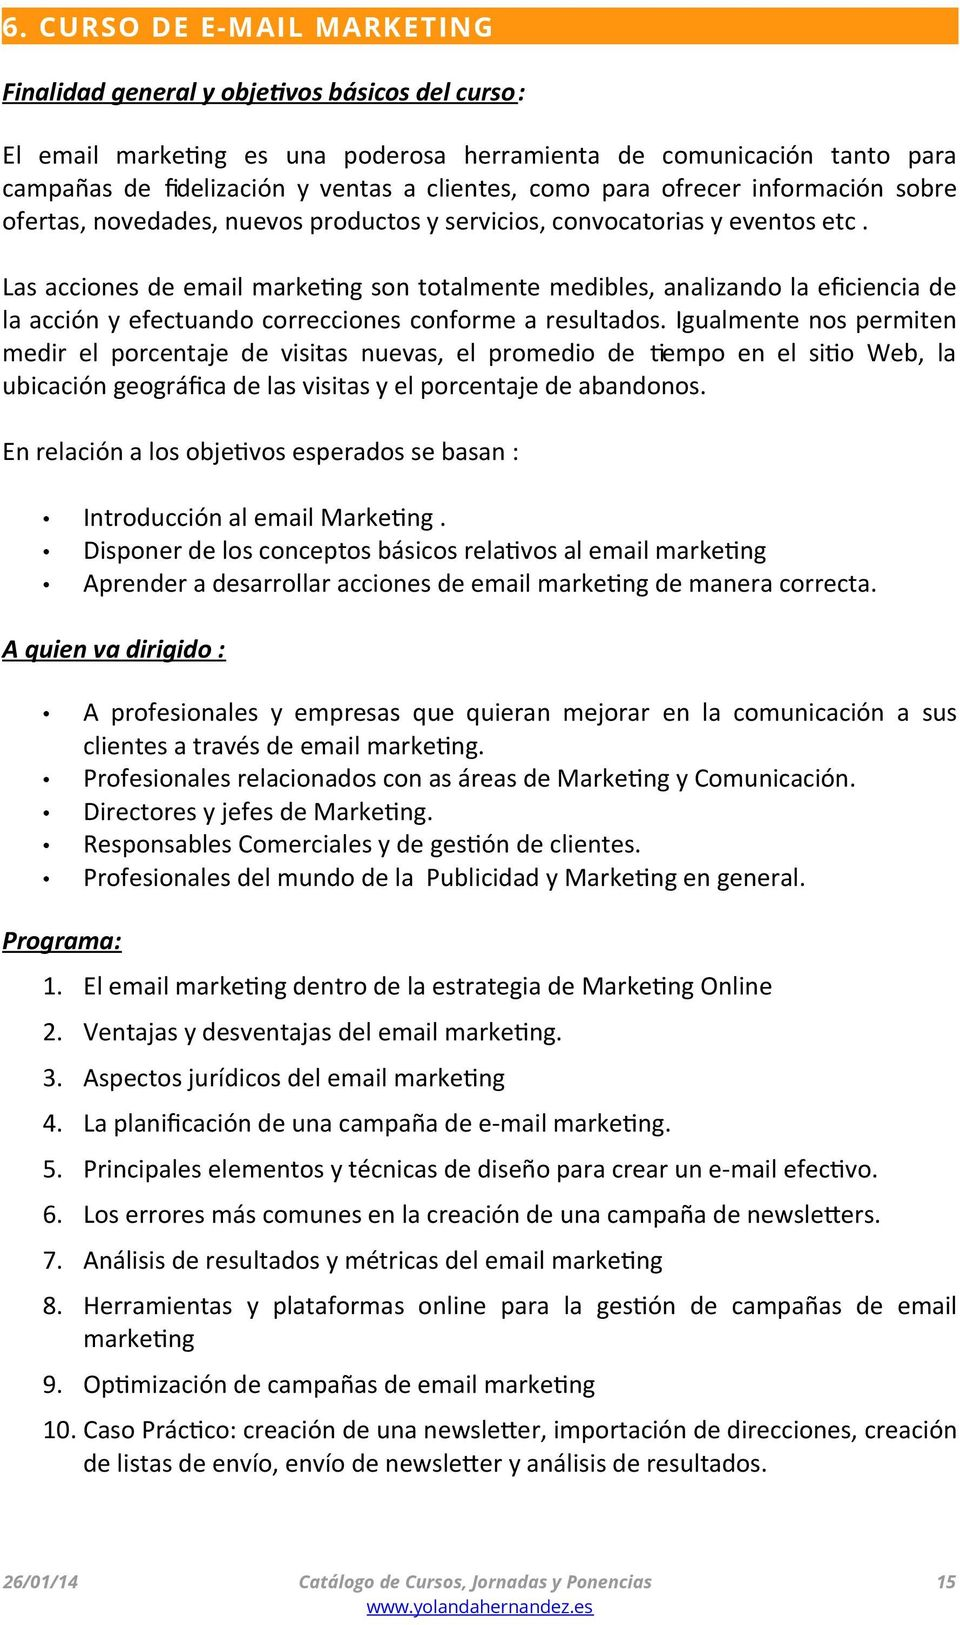 Las acciones de email marketing son totalmente medibles, analizando la efciencia de la acción y efectuando correcciones conforme a resultados.